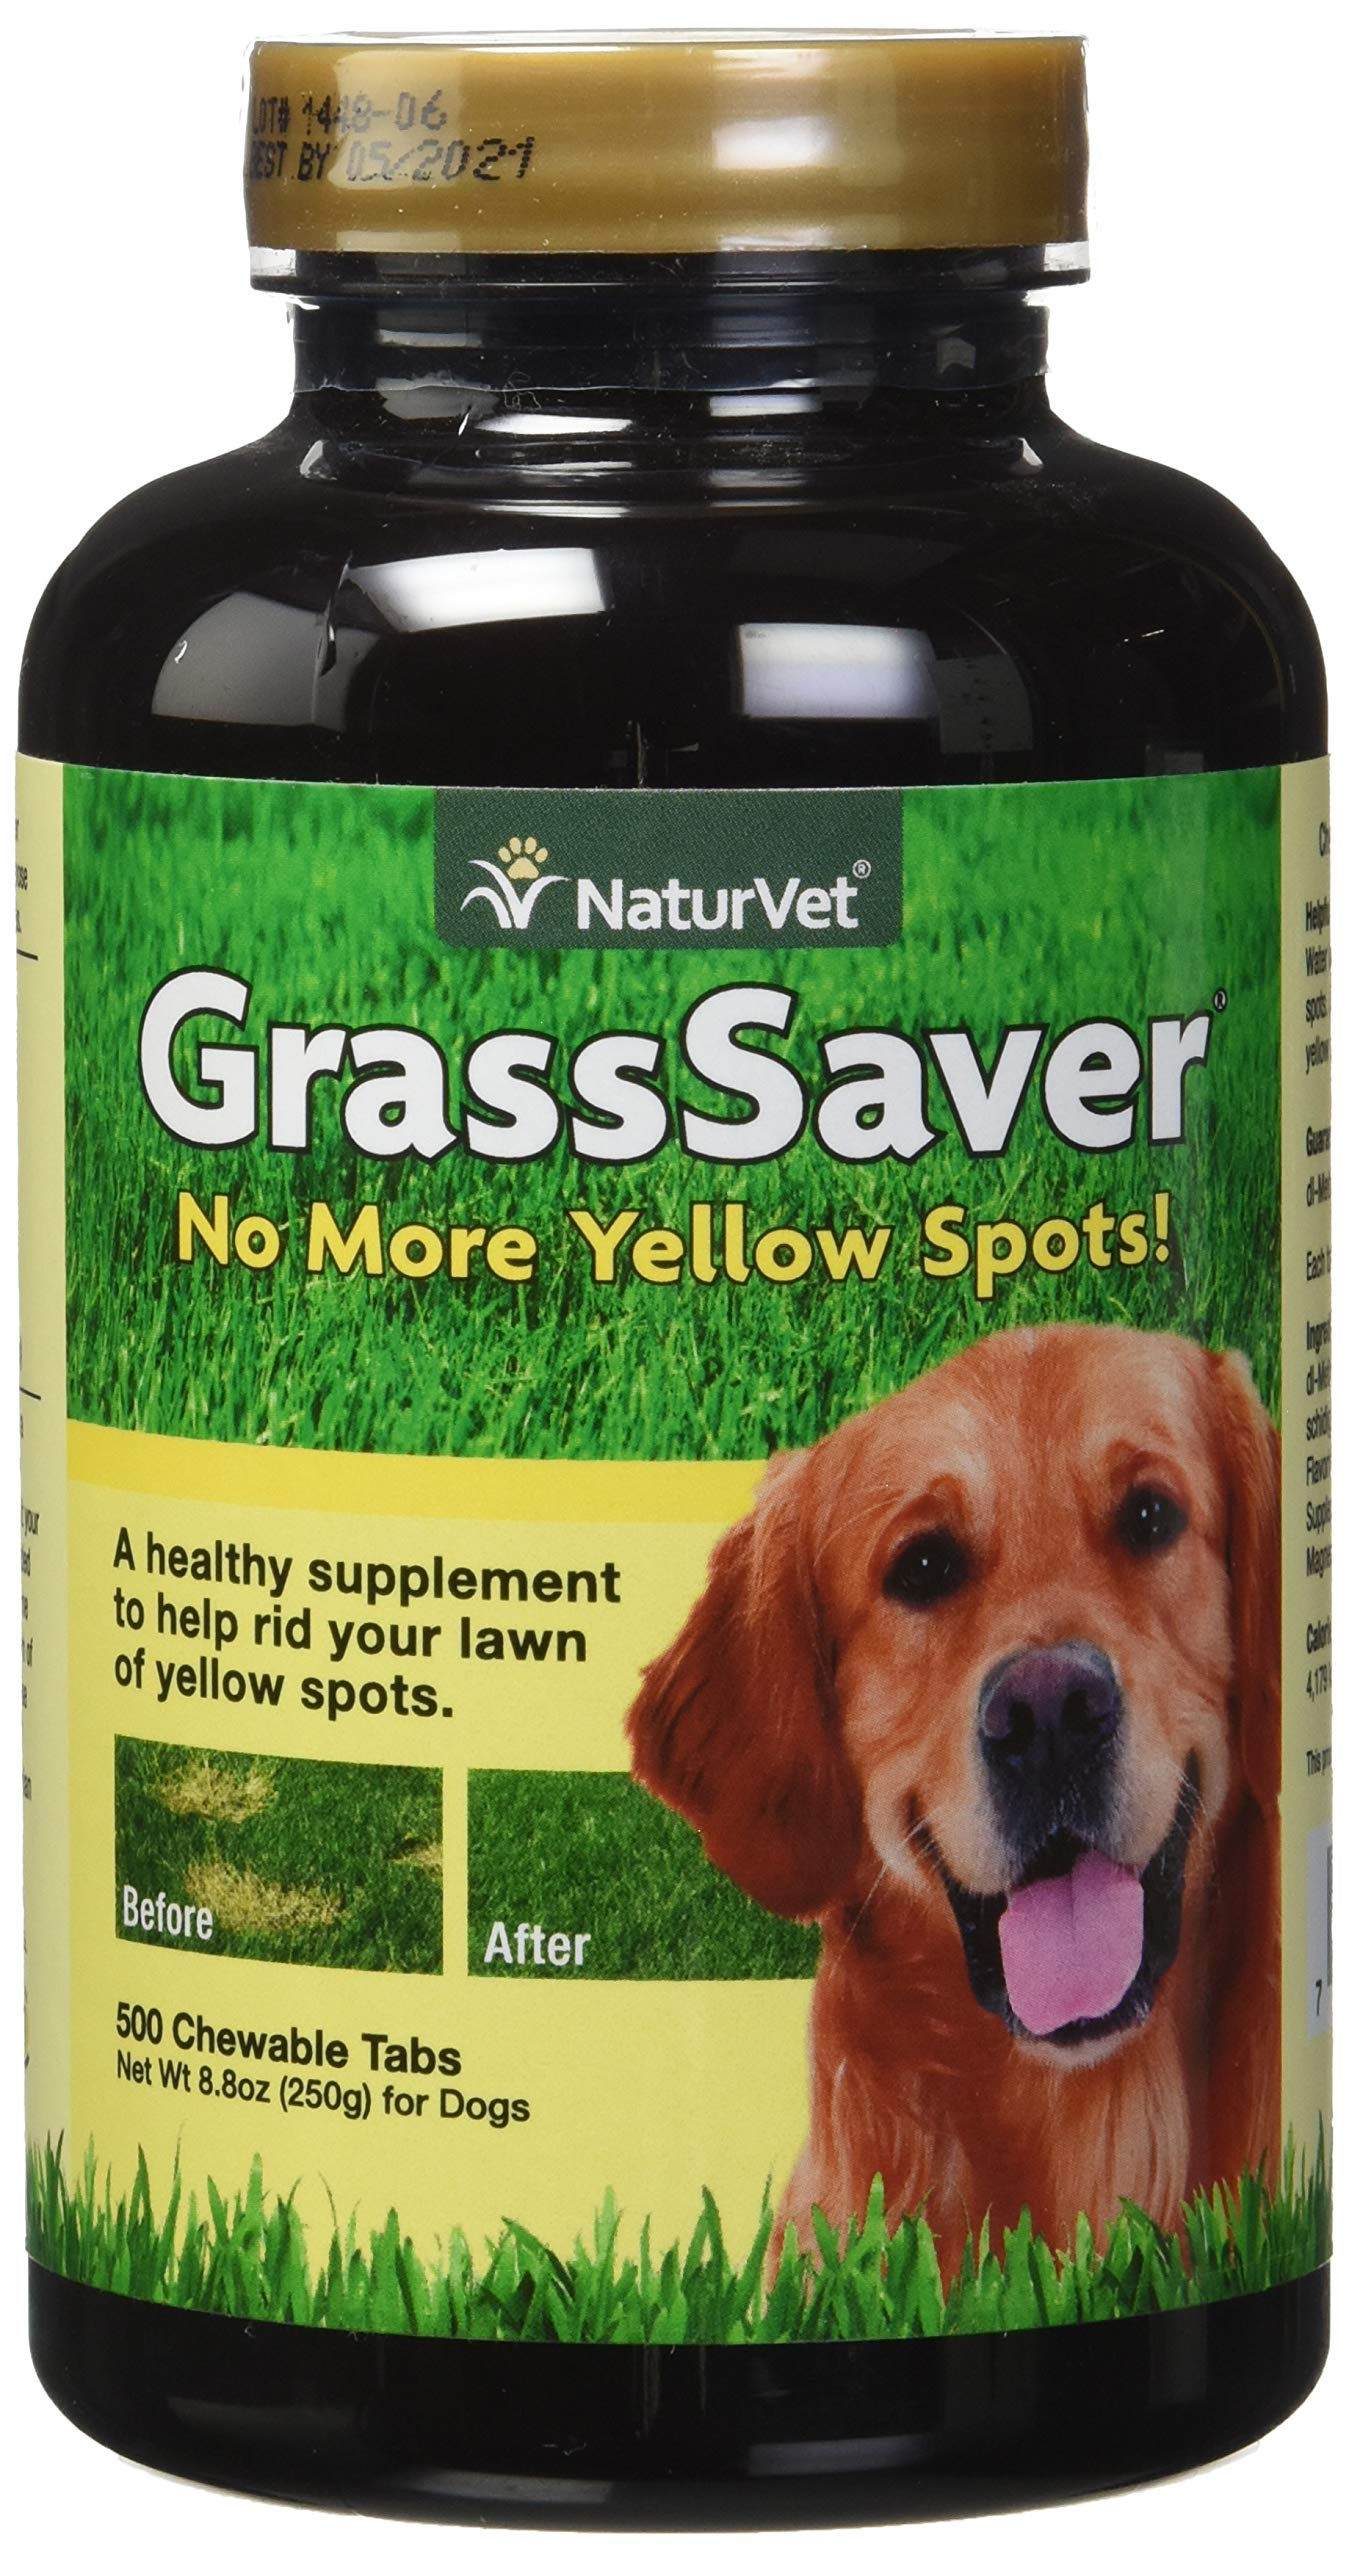 NaturVet - GrassSaver Supplement for Dogs - Healthy Supplement to Help Rid Your Lawn of Yellow Spots - Synergistic Combination of B-Complex Vitamins & Amino Acids - 500 Tablets by NaturVet